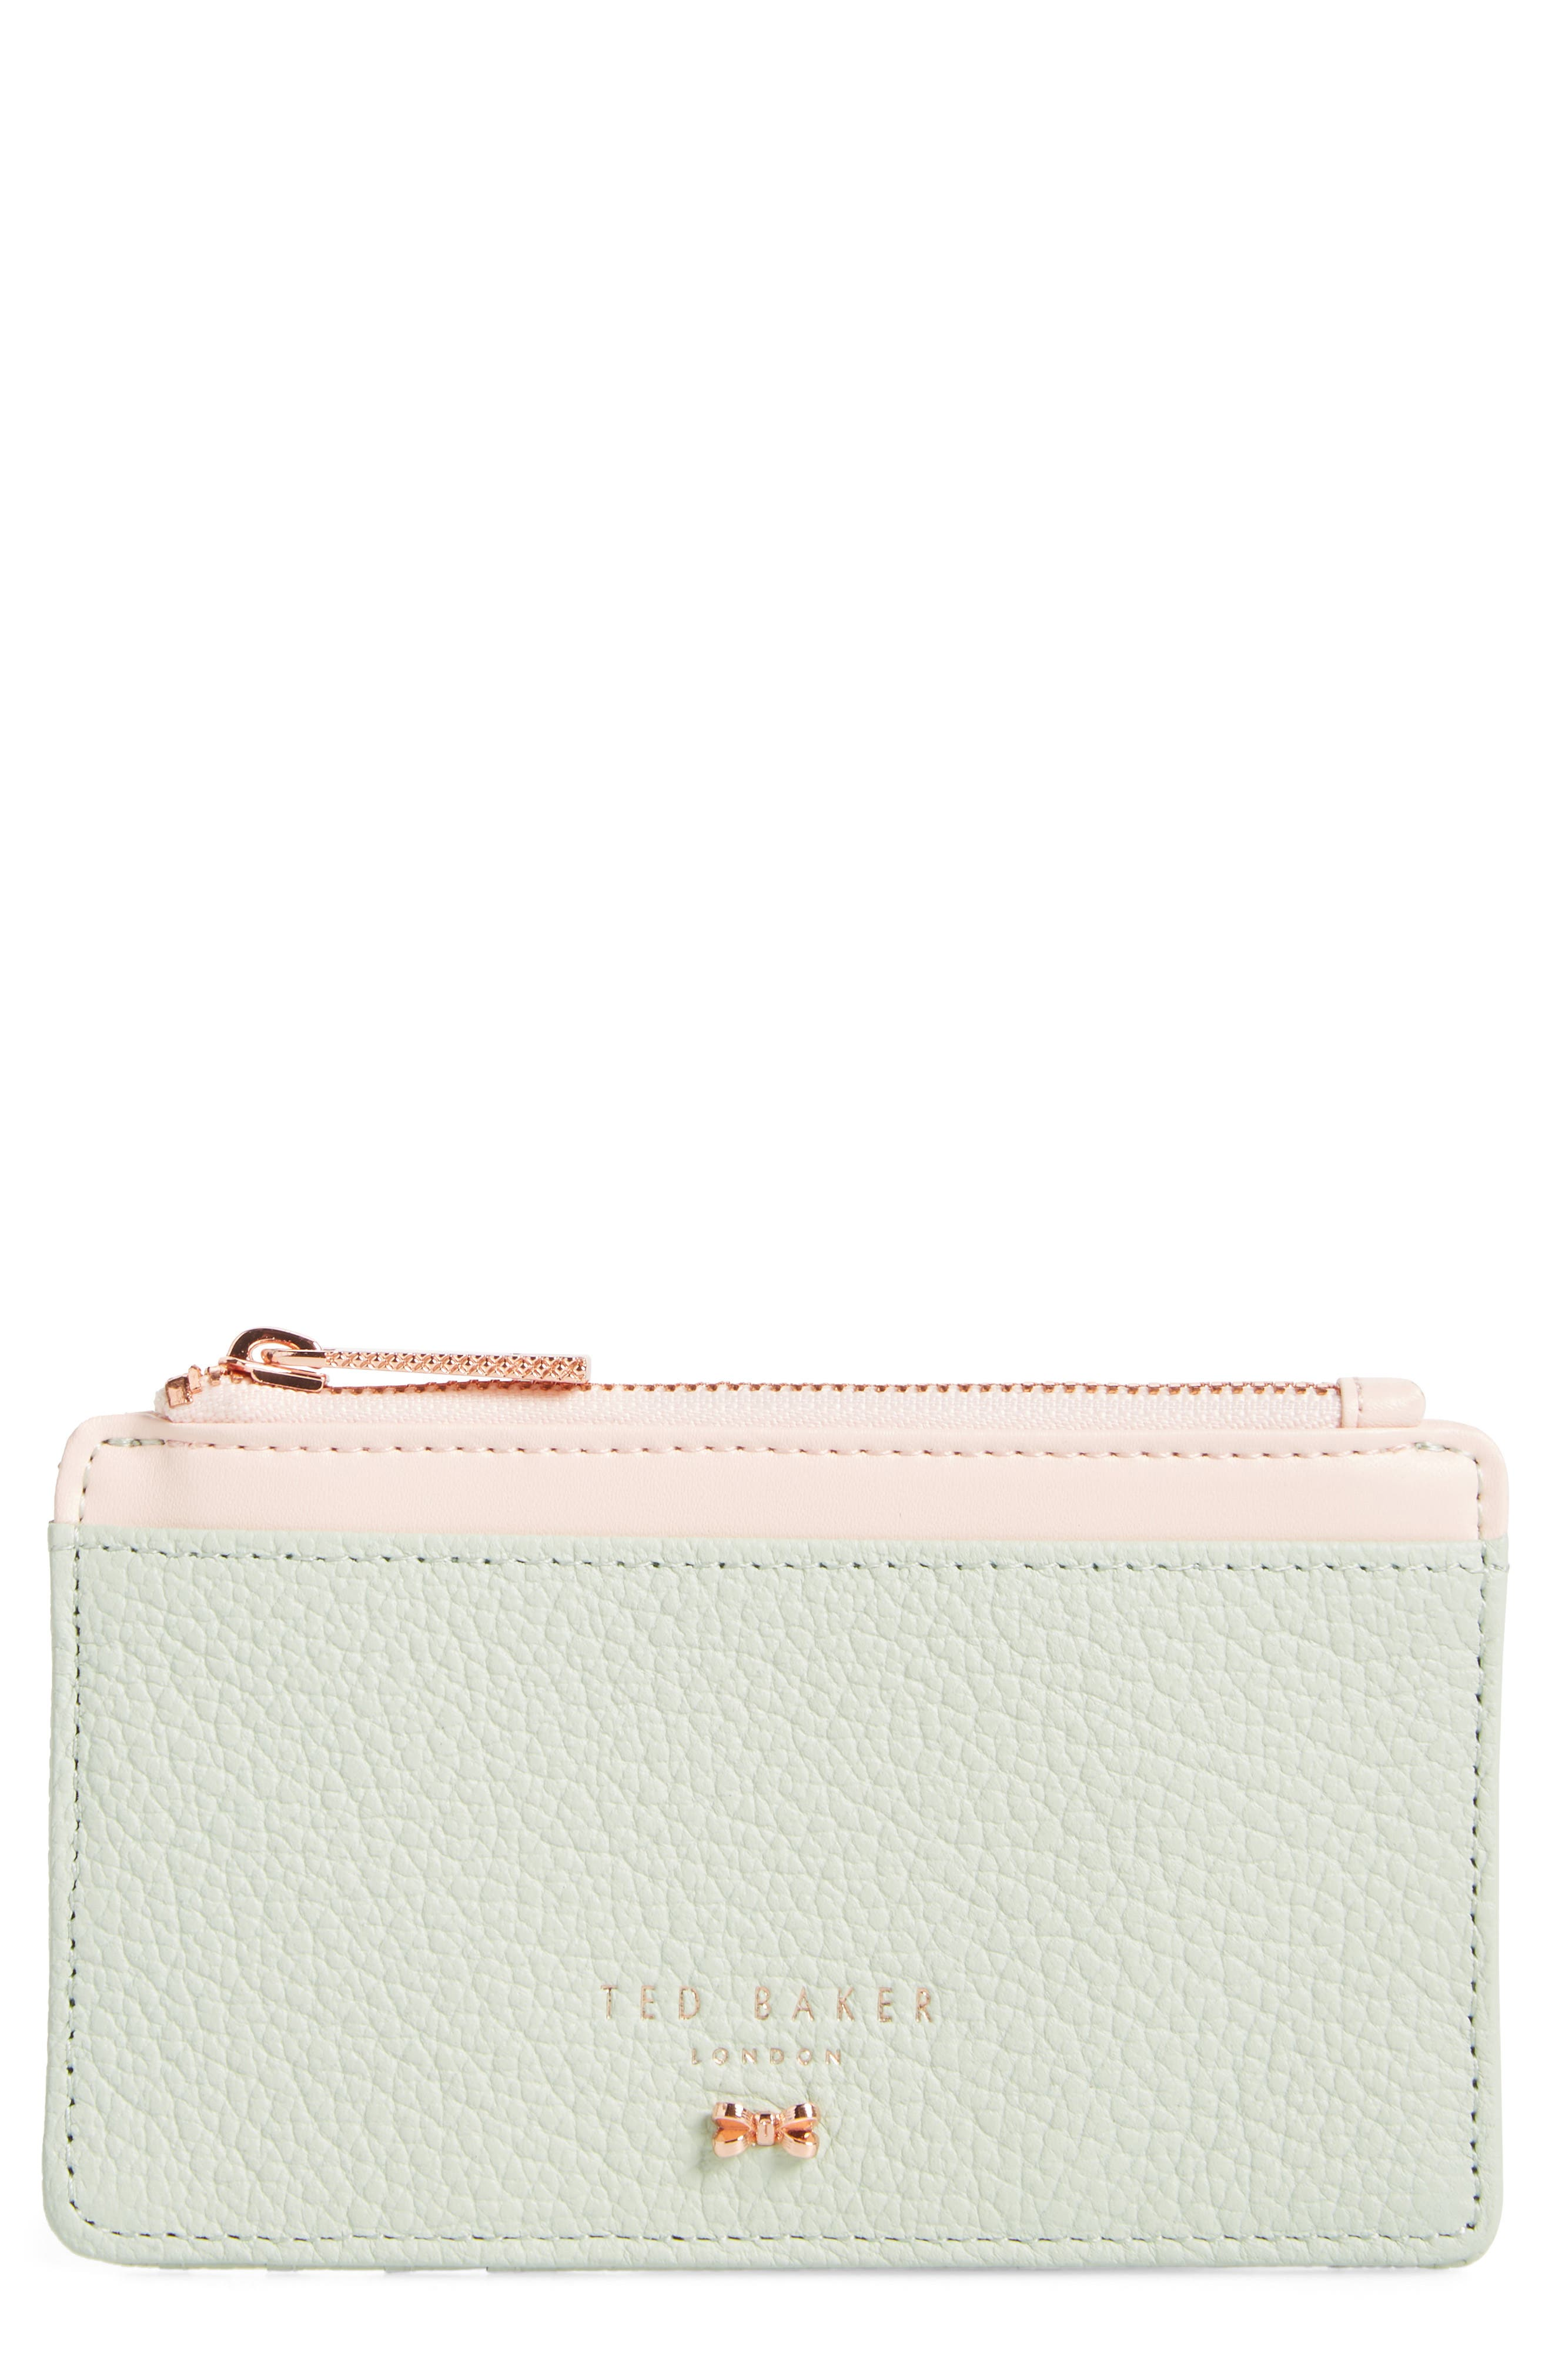 Alica Top Zip Leather Card Case,                         Main,                         color, Olive